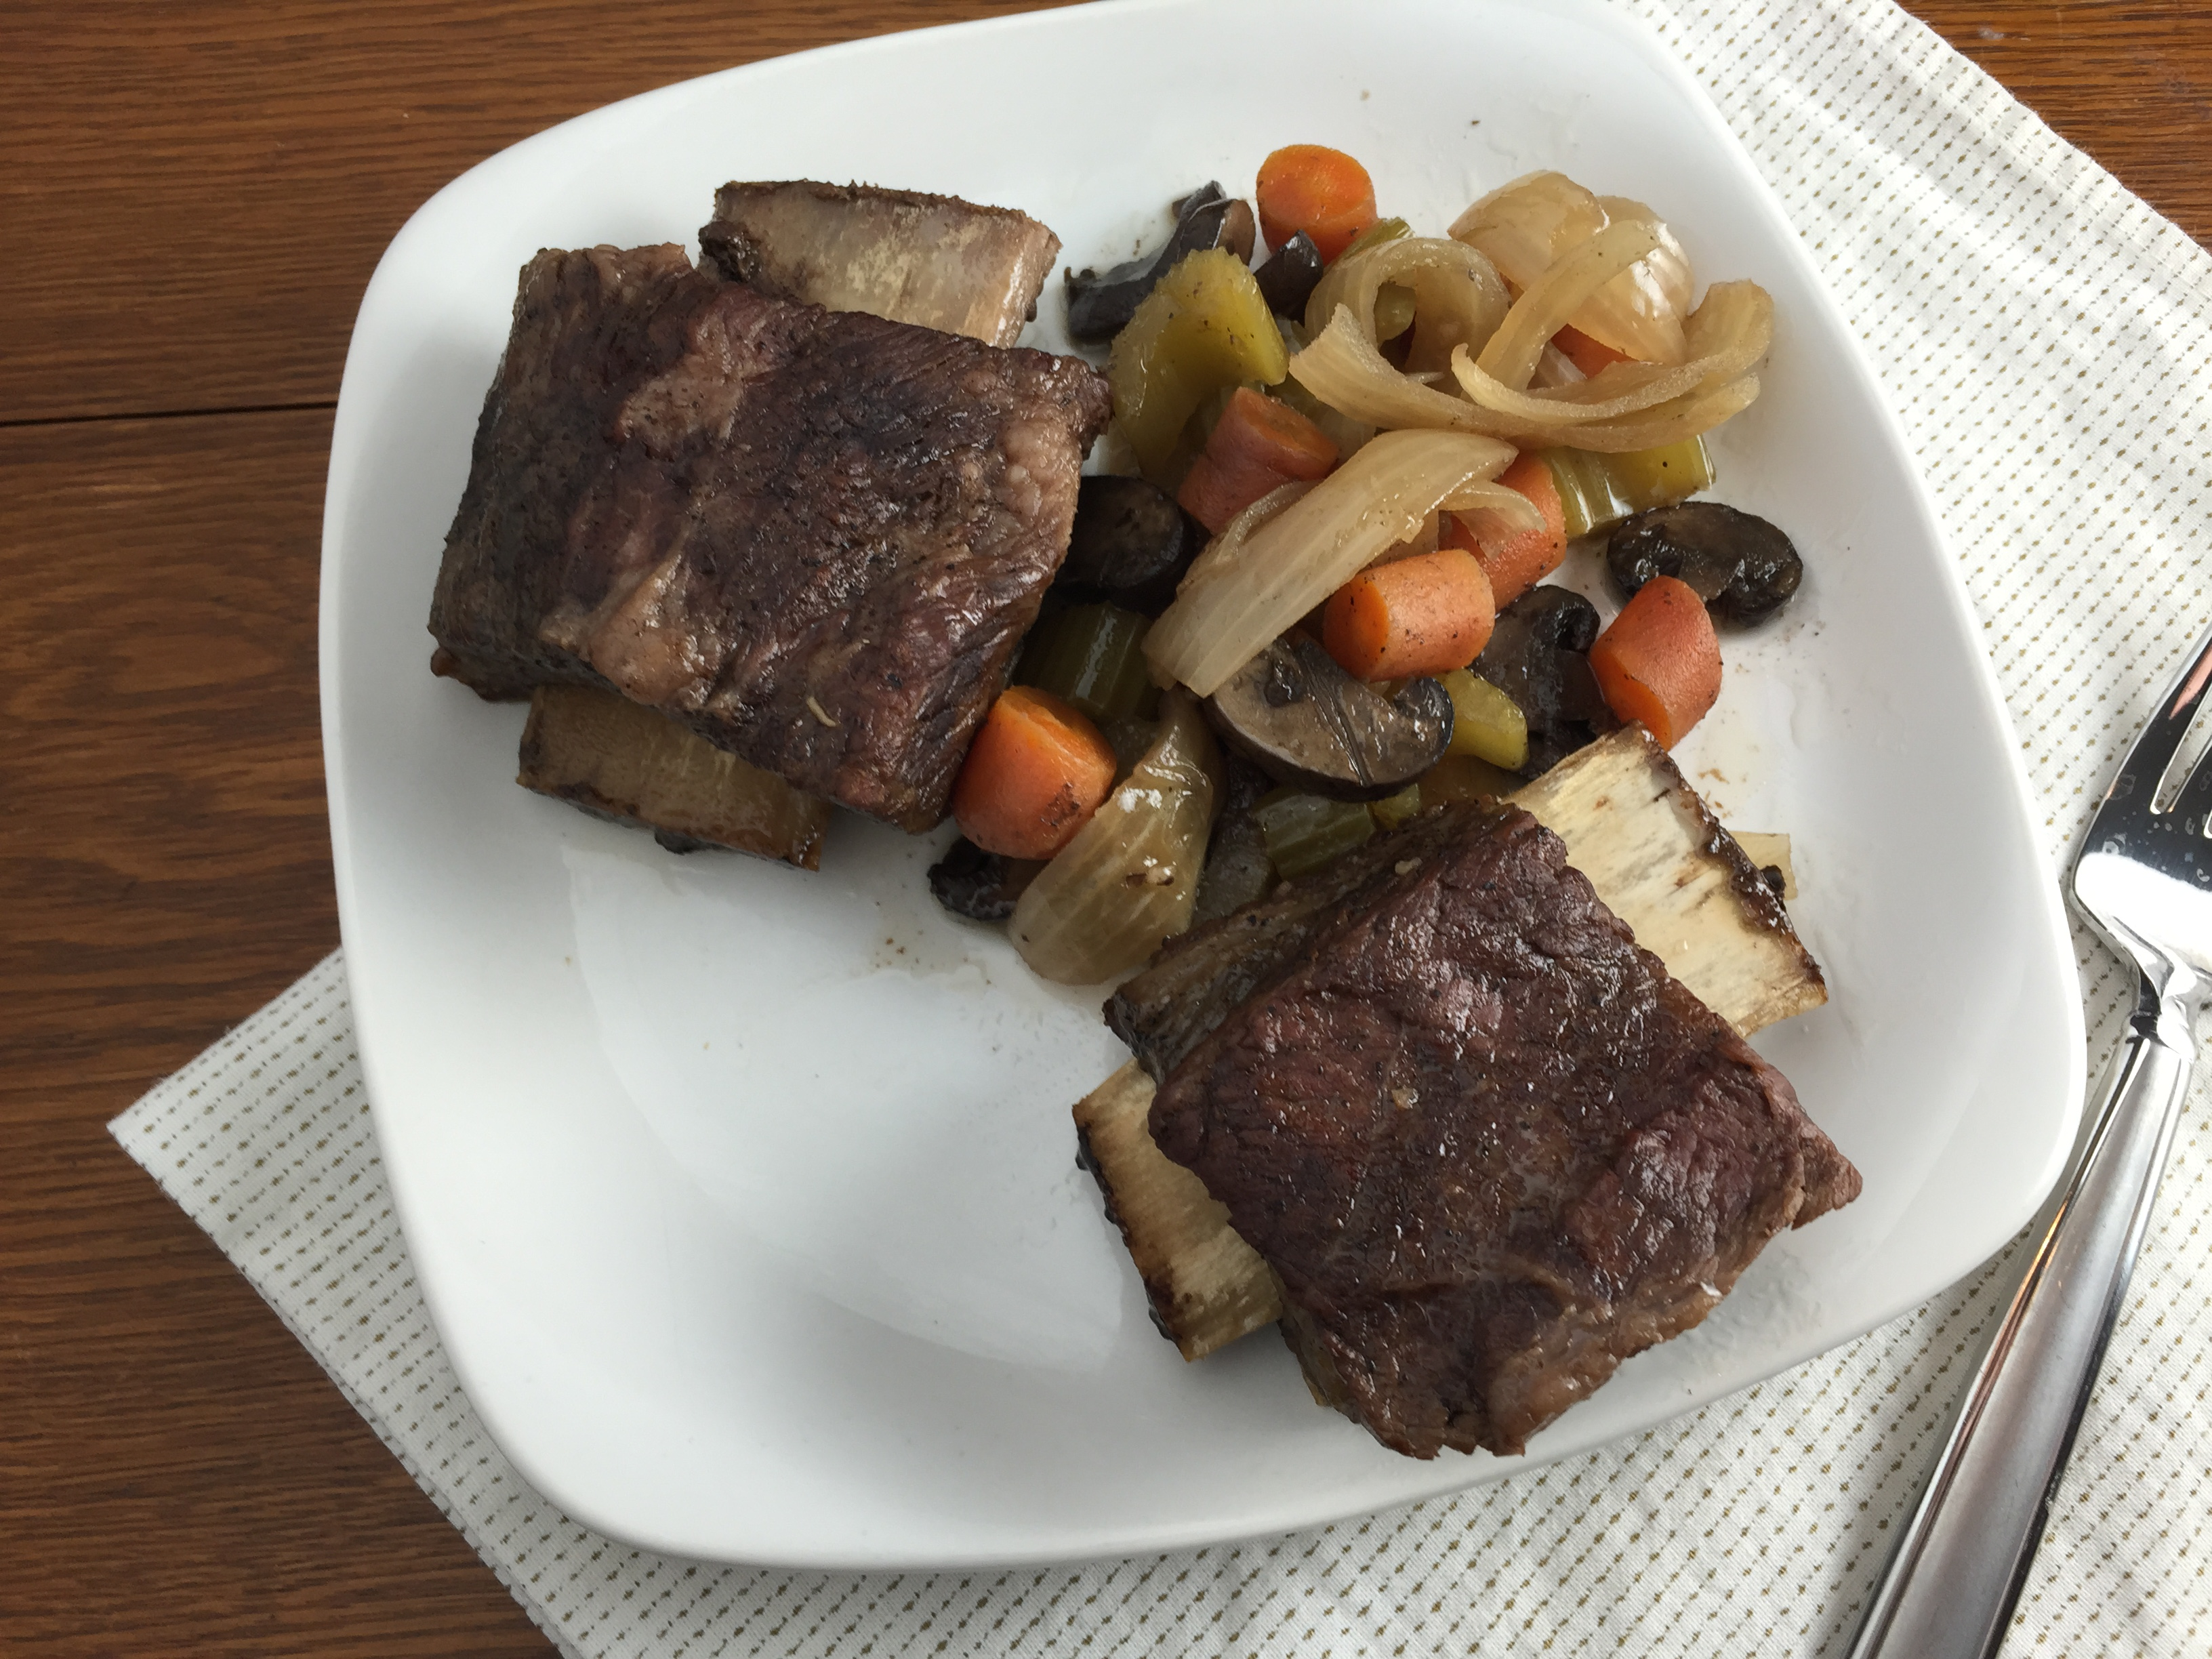 Duet: Beer Braised Short Ribs in a Slow Cooker / The Head and The Heart